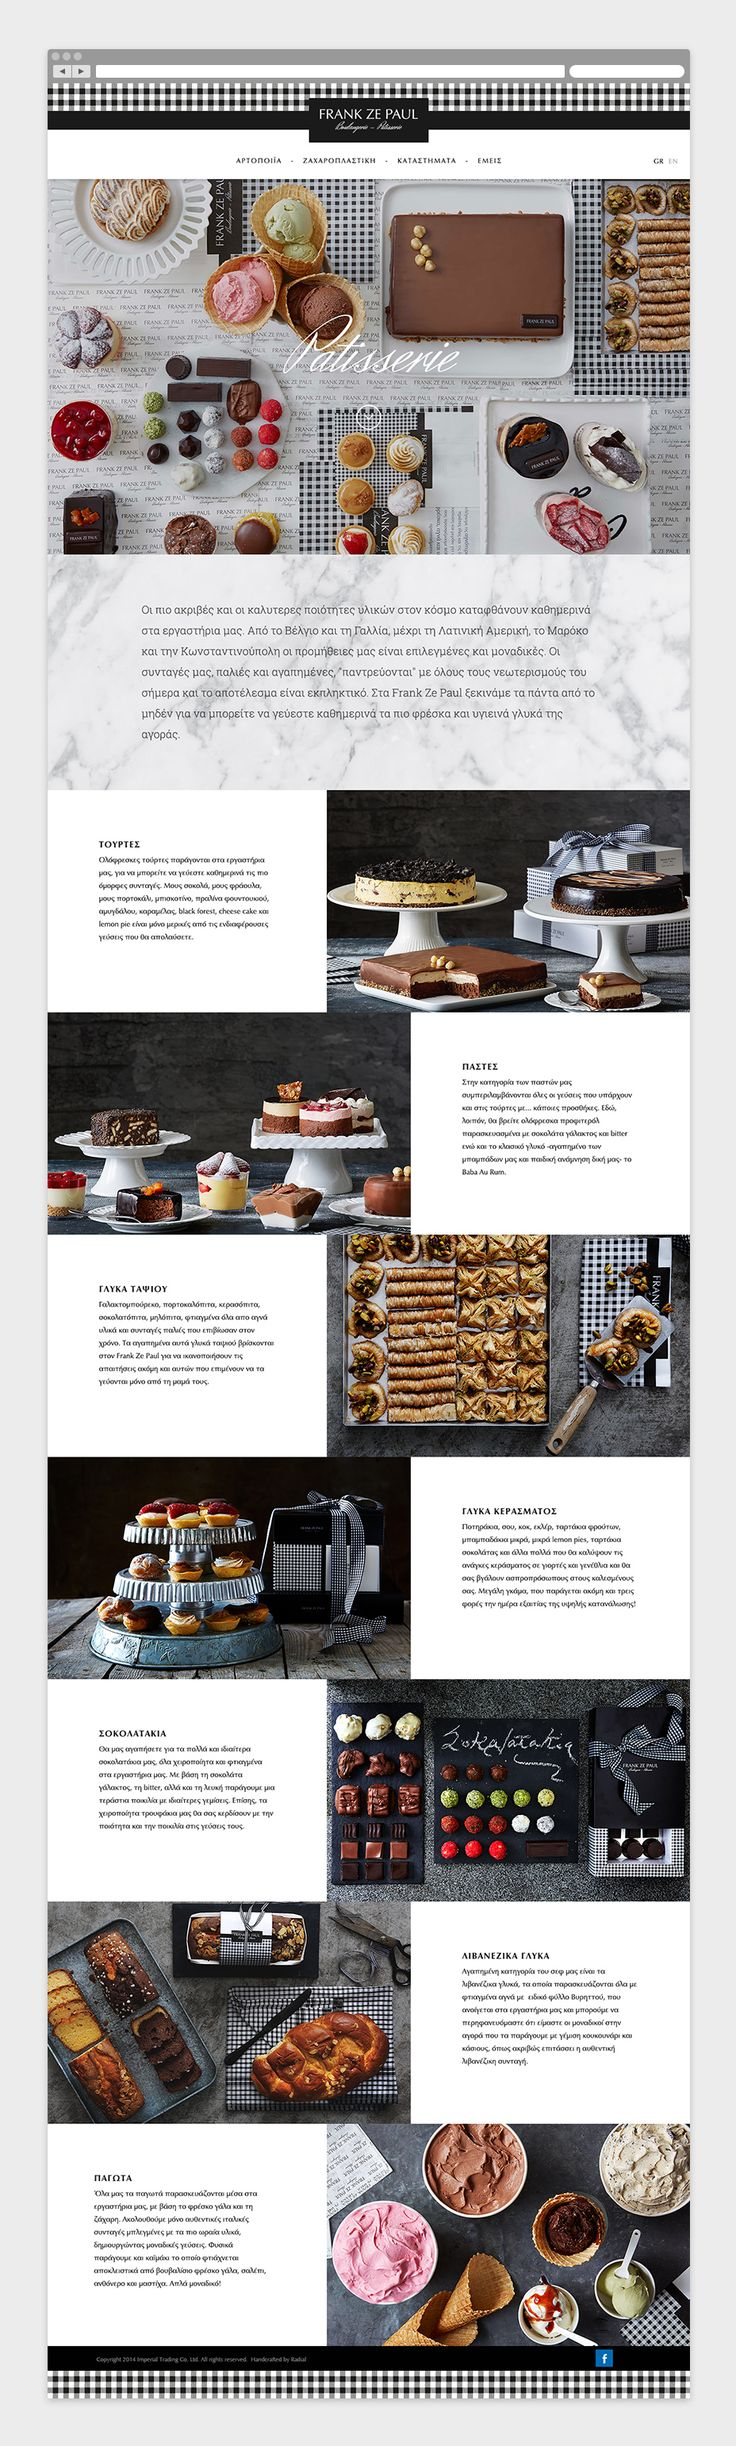 Frank Ze Paul is a Greek #bakery - #pastry shop that follows the standards of French #boulangeries.